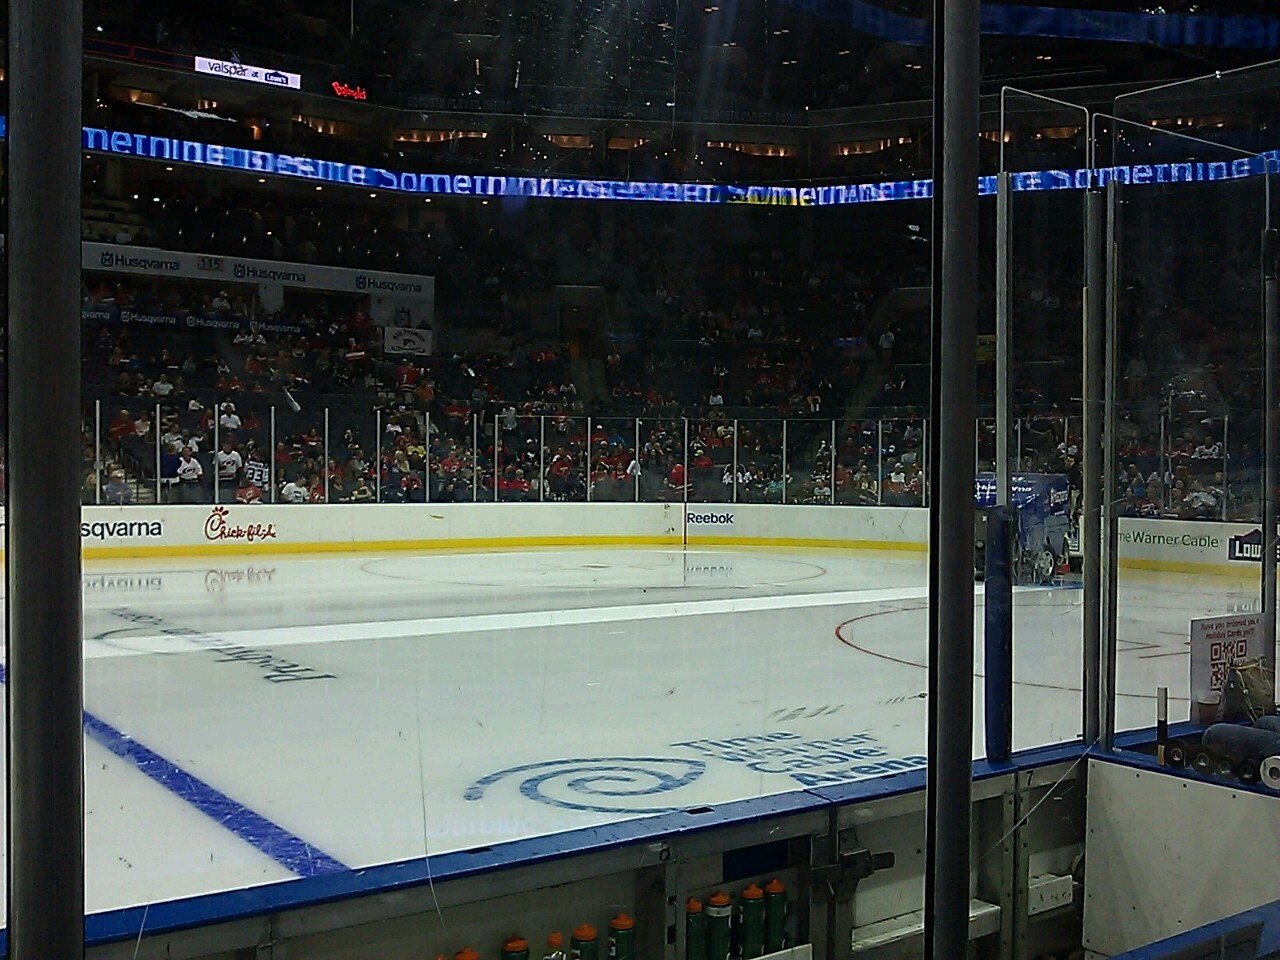 Andy took me to a hockey game! This is my first time. It the Hurricane's vs the Jet's. We are right behind the player's bench just to the right of center ice. I'm not a big sports fan, but I must admit this is pretty exciting!